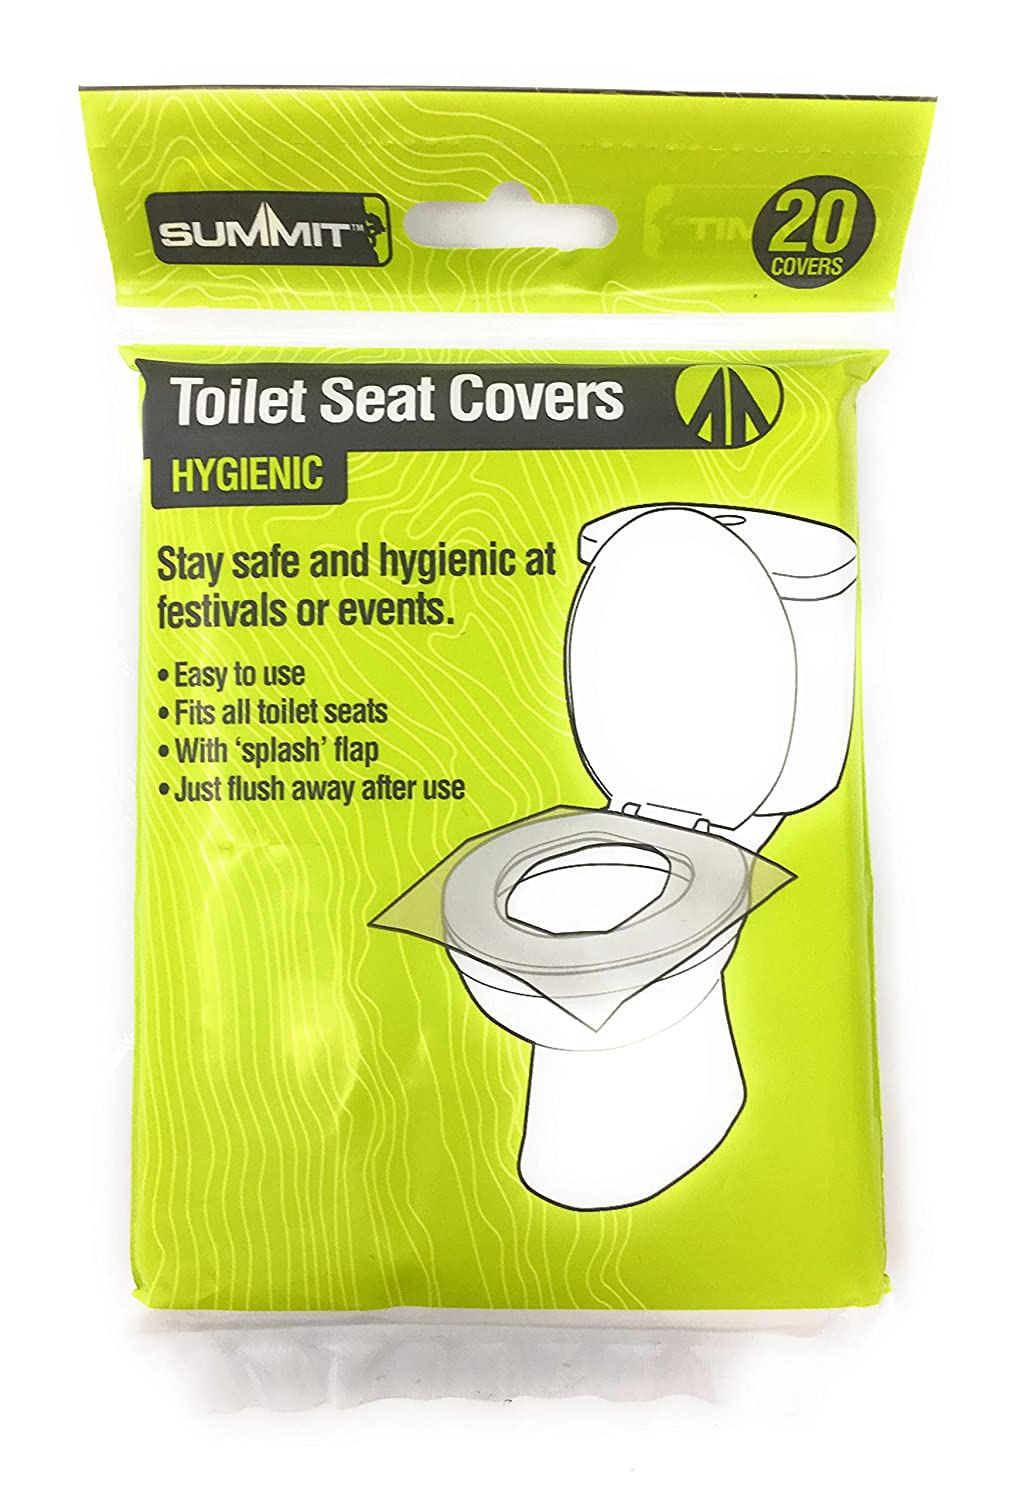 Enjoyable Pms Festival Camping Toilet Seat Covers Pk 20 Gmtry Best Dining Table And Chair Ideas Images Gmtryco